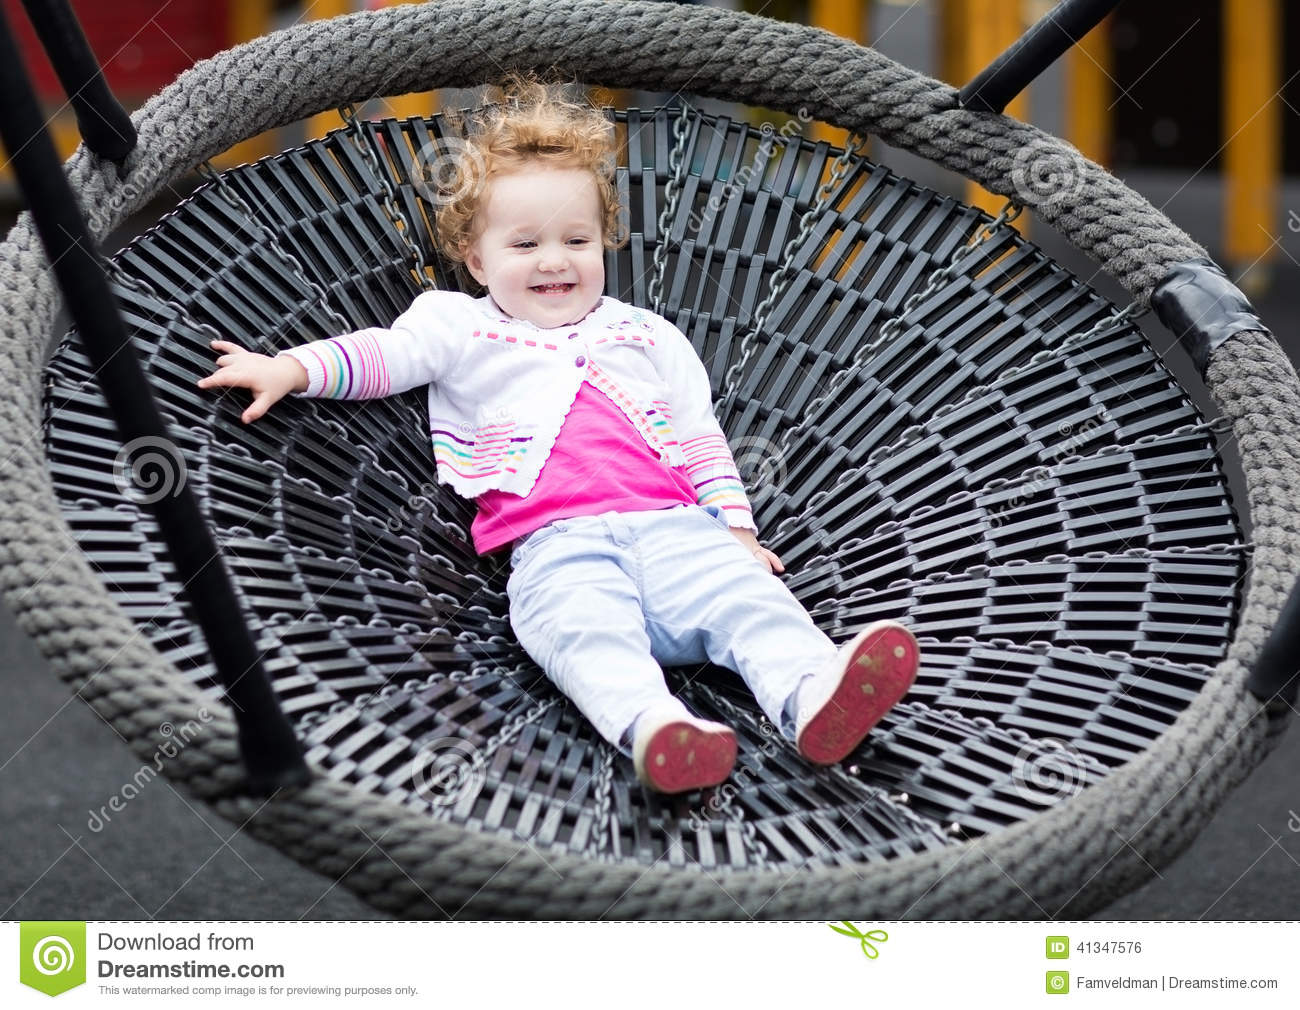 Cute Laughing Baby Girl On A Net Swing Enjoying A Sunny Day Stock Photo - Image of family